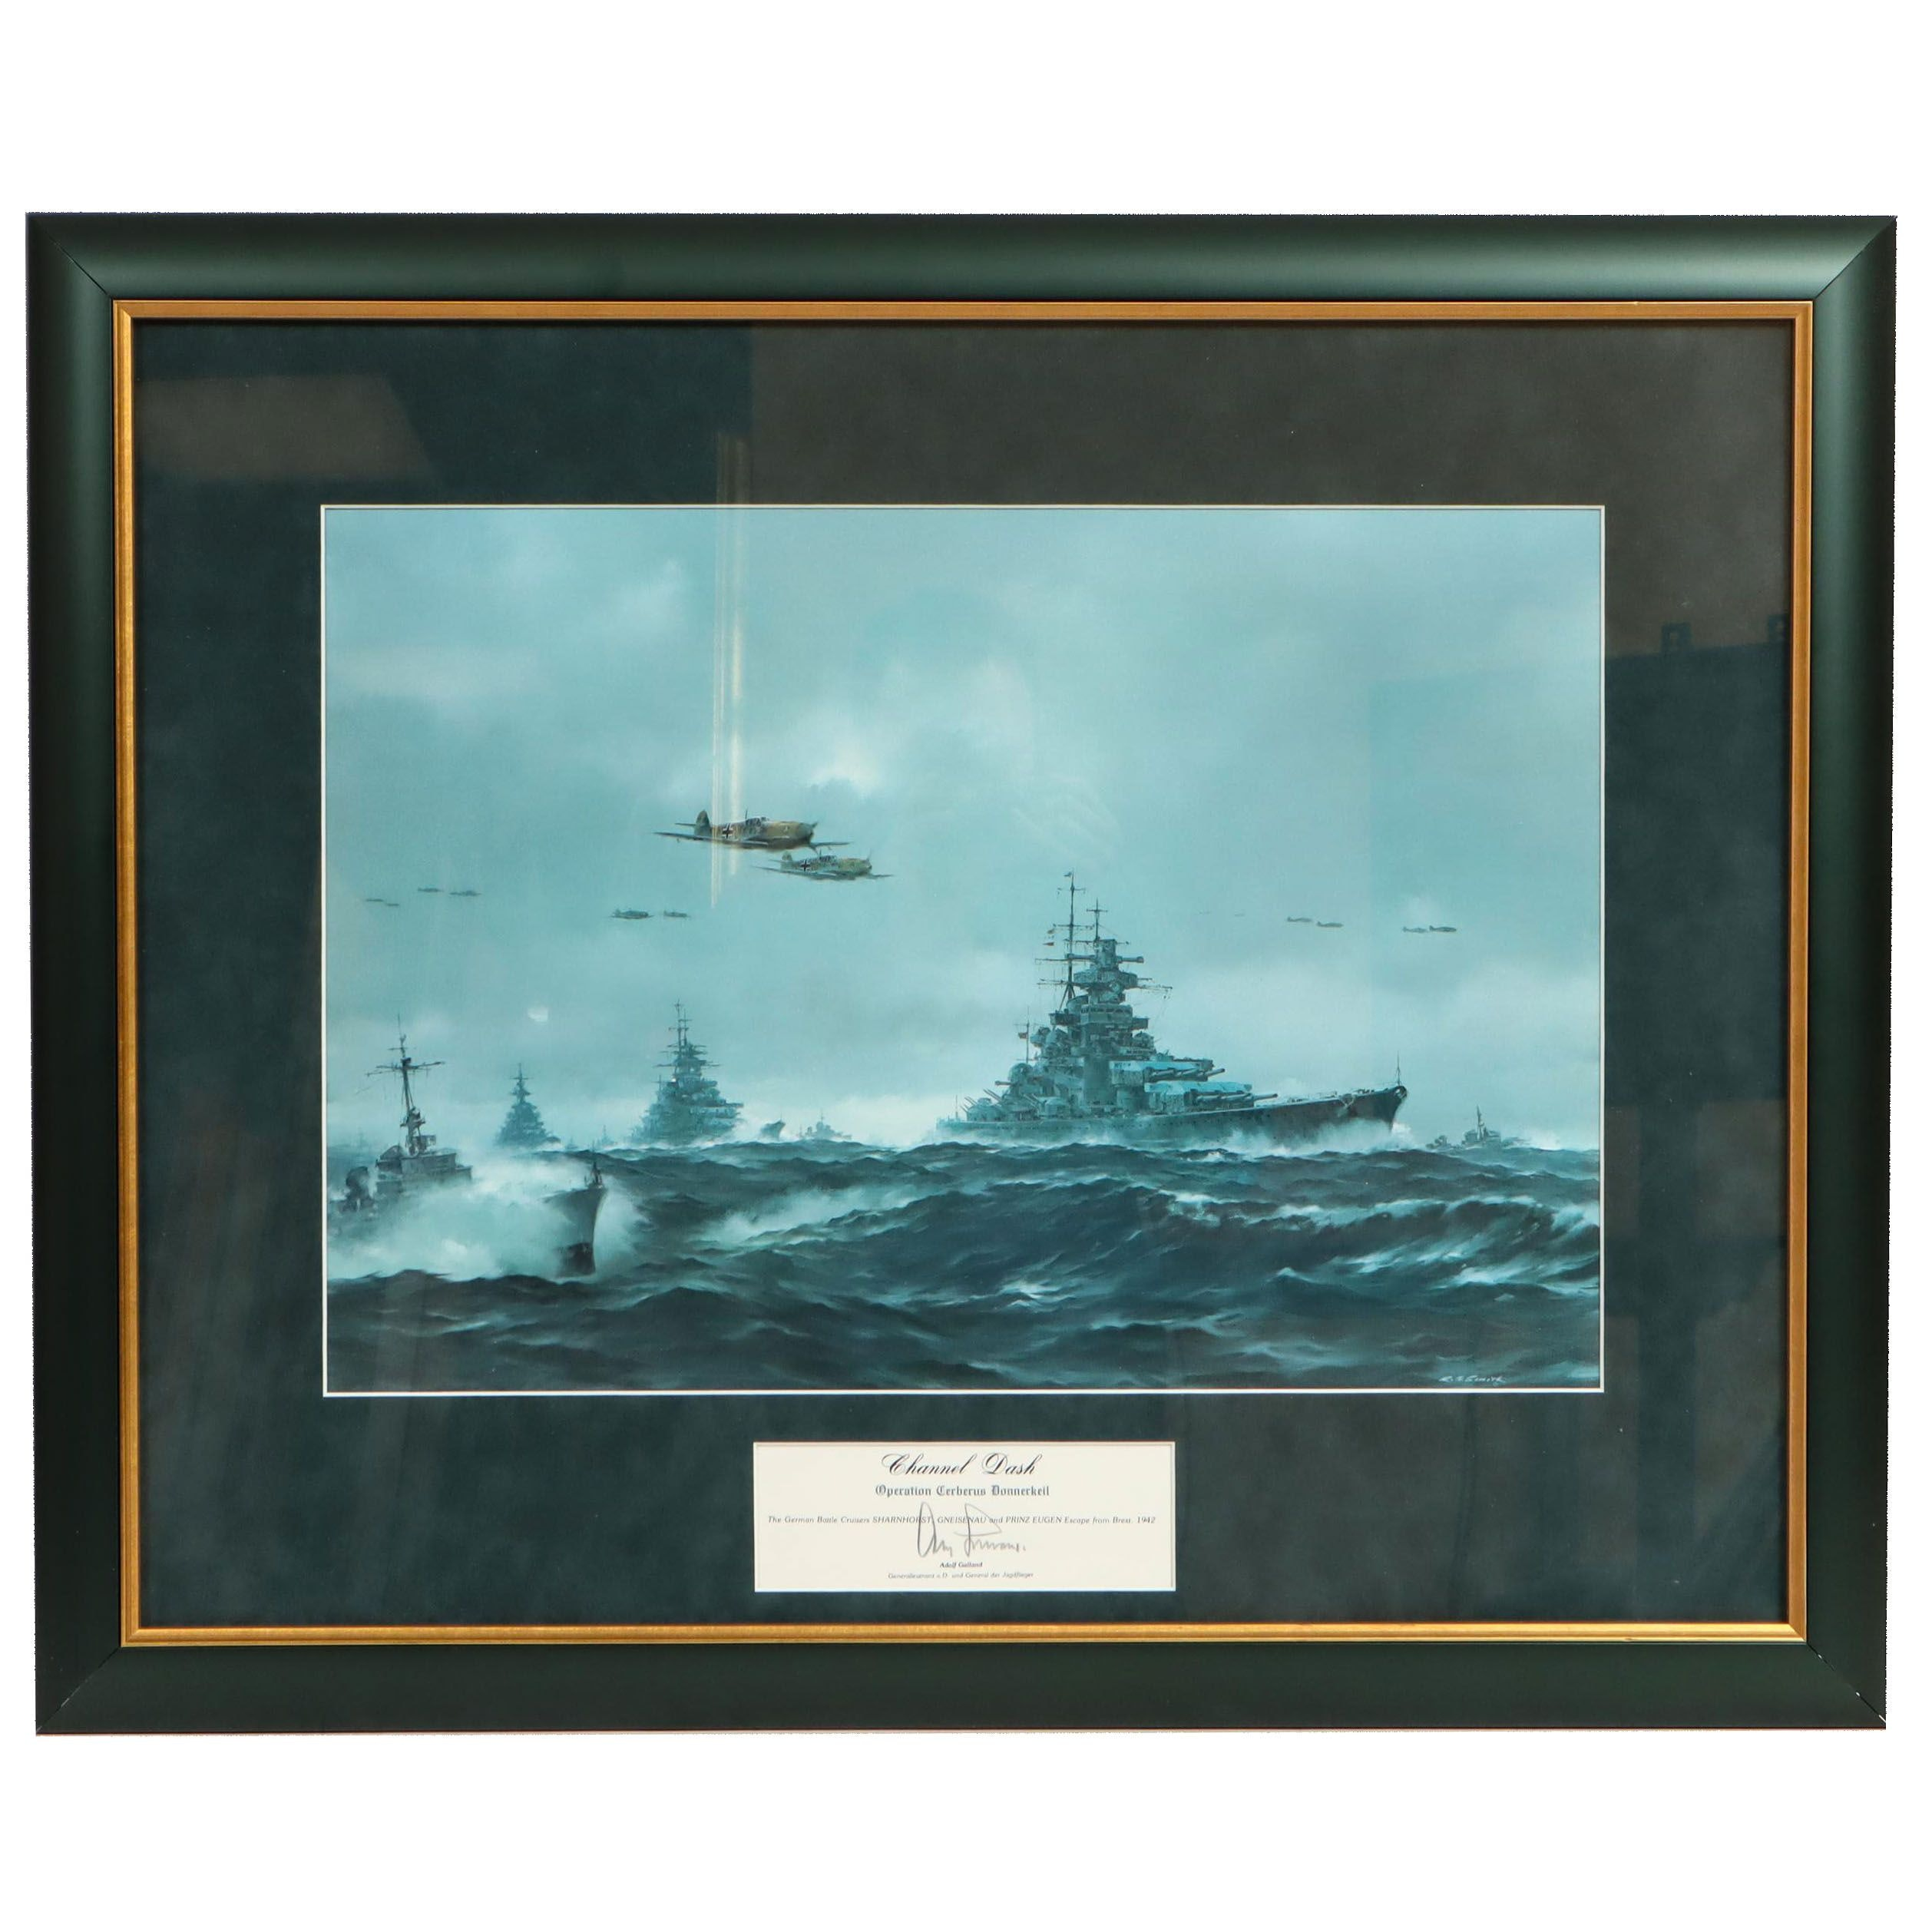 """R.G. Smith Offset Lithograph """"Channel Dash"""" Signed by Adolf Galland"""